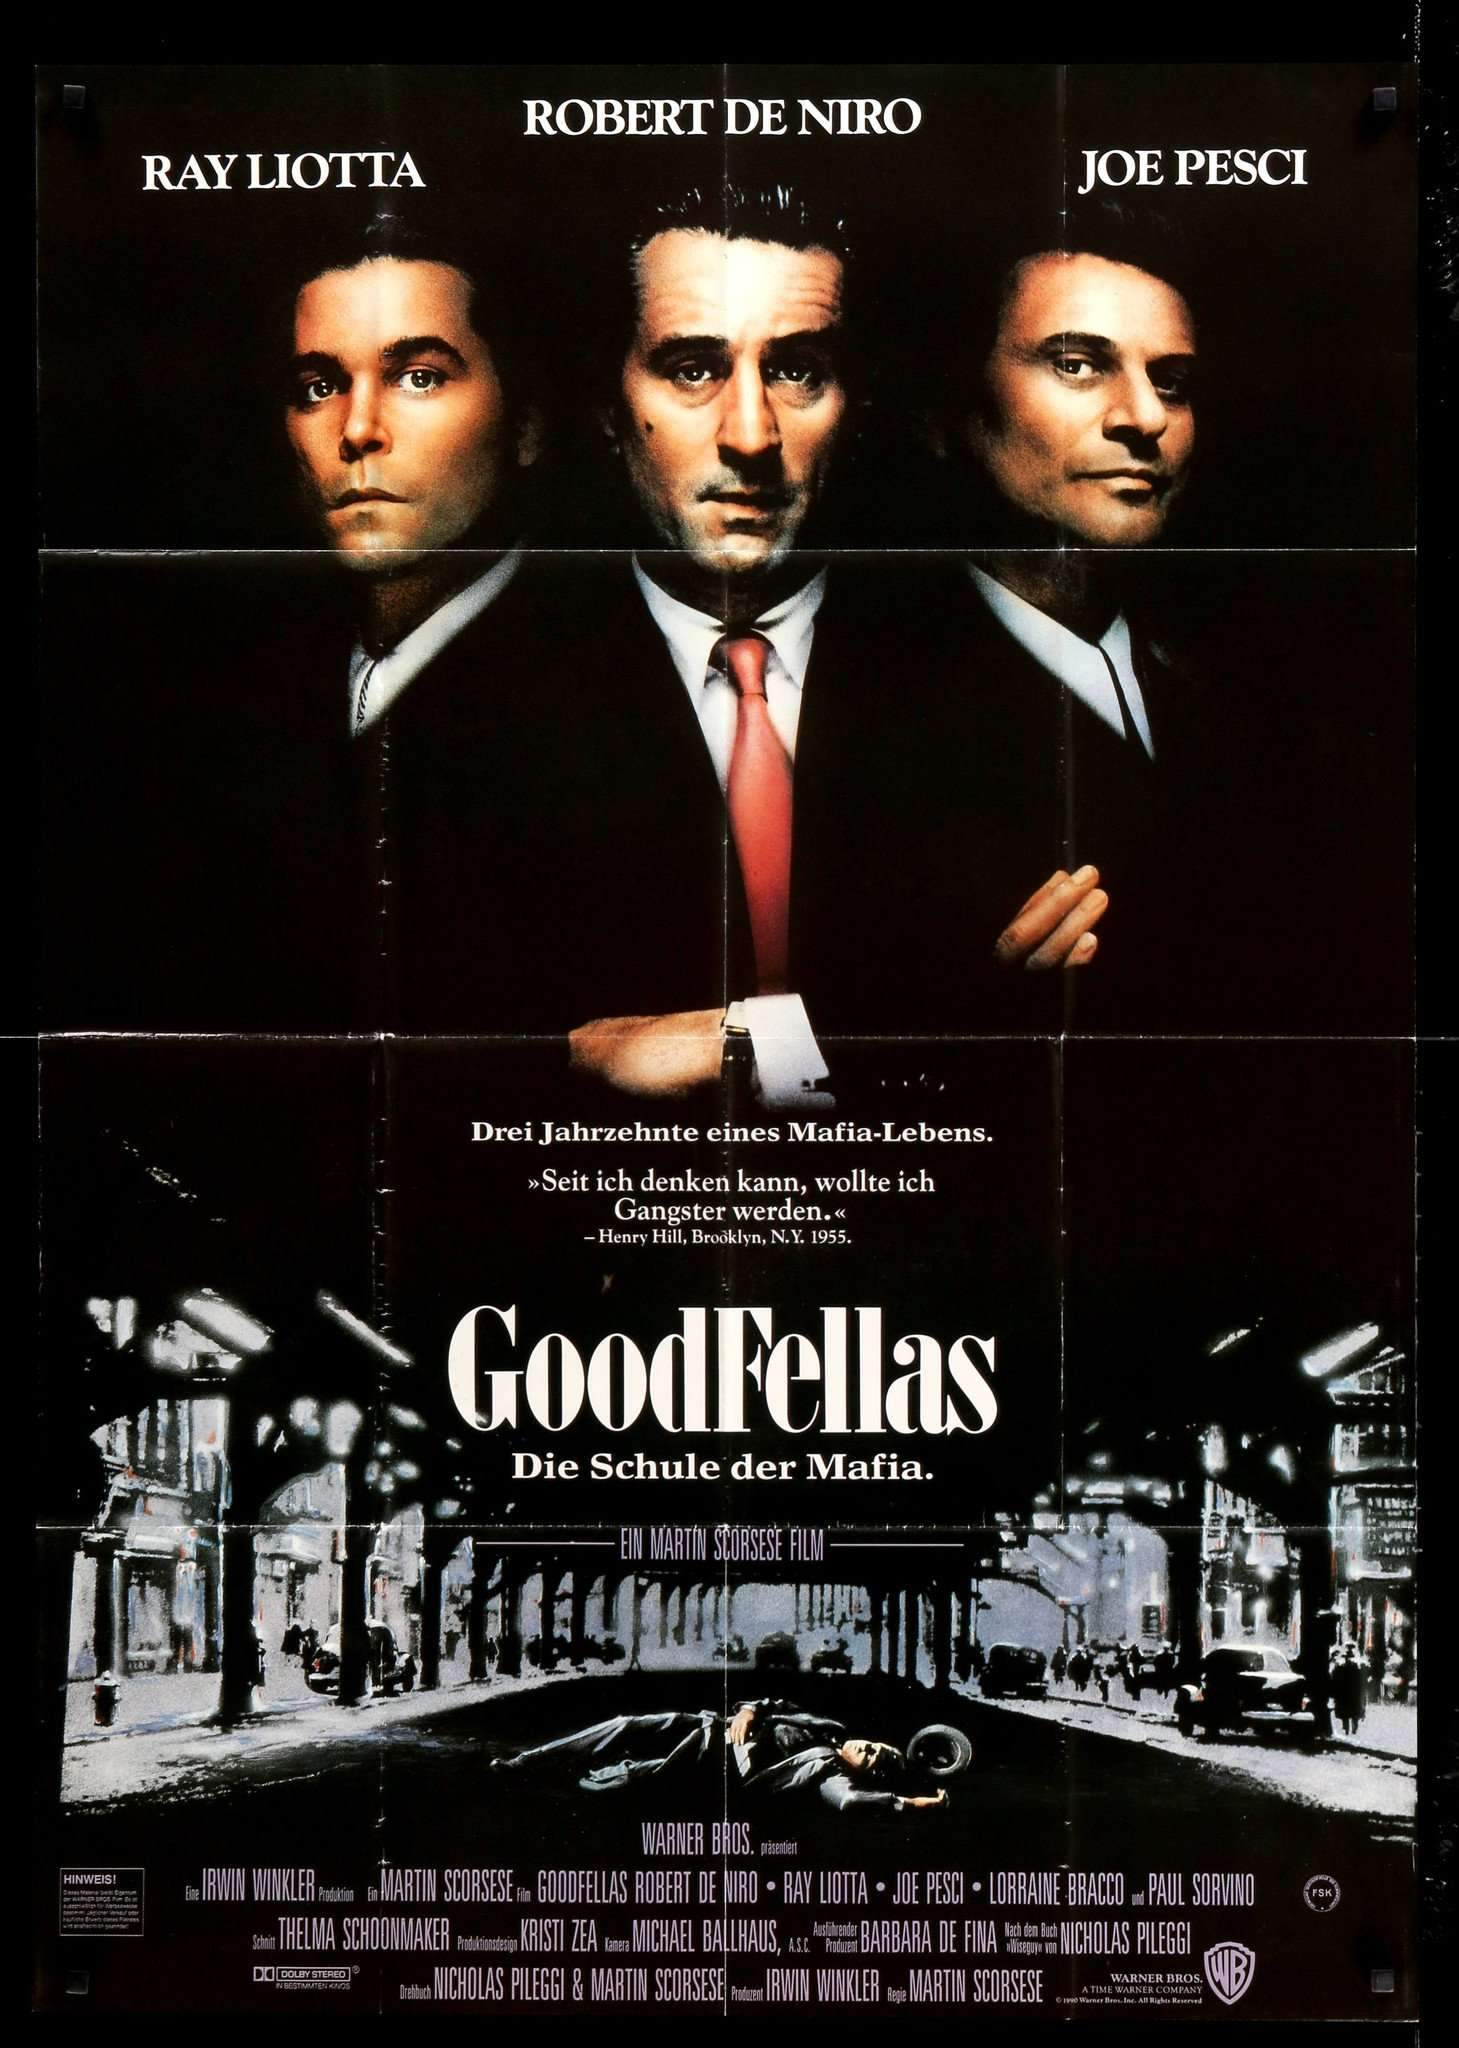 goodfellas_original_film_art_spo_2000x.jpg